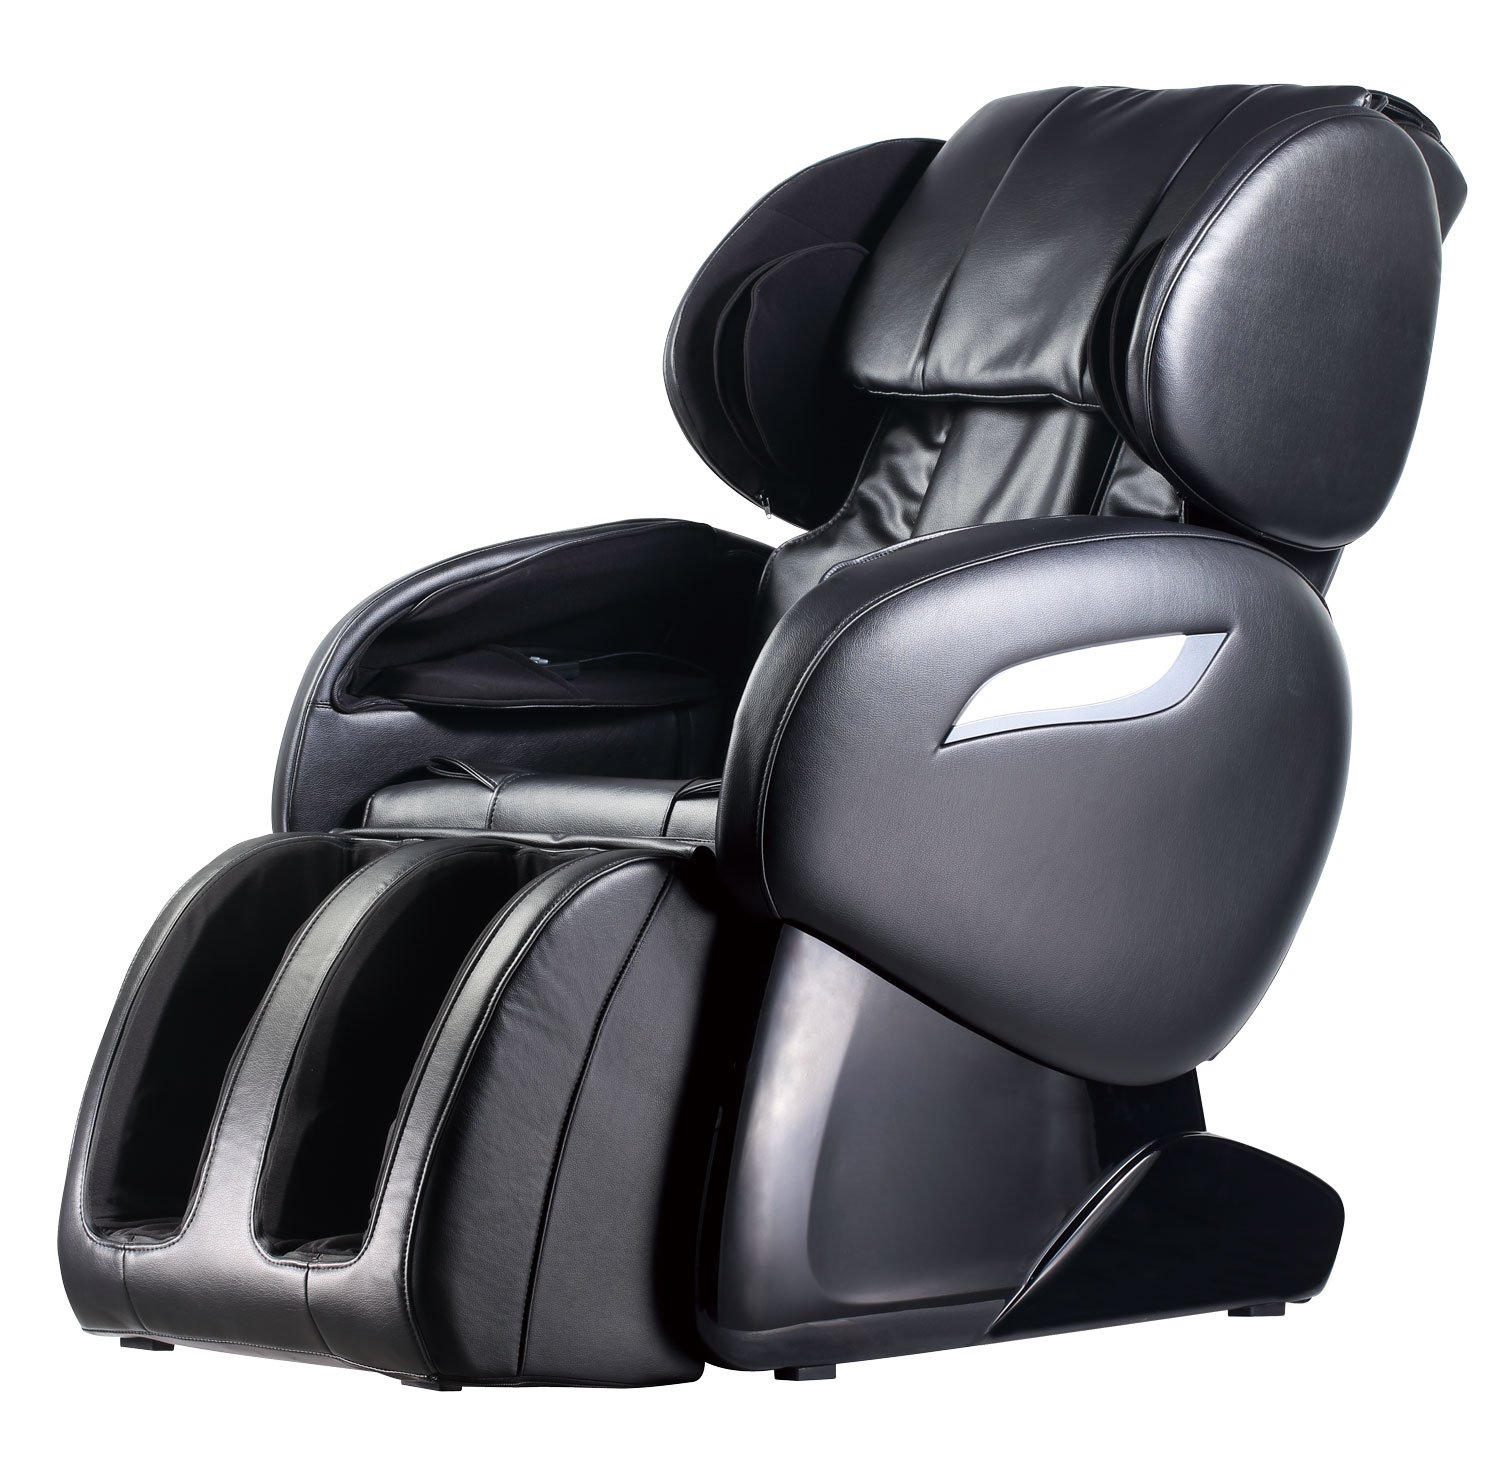 Zero Gravity Full Body Electric Shiatsu UL Approved Massage Chair Recliner with Built-in Heat Therapy and Foot Roller Air Massage System Stretch Vibrating for Home Office,Black